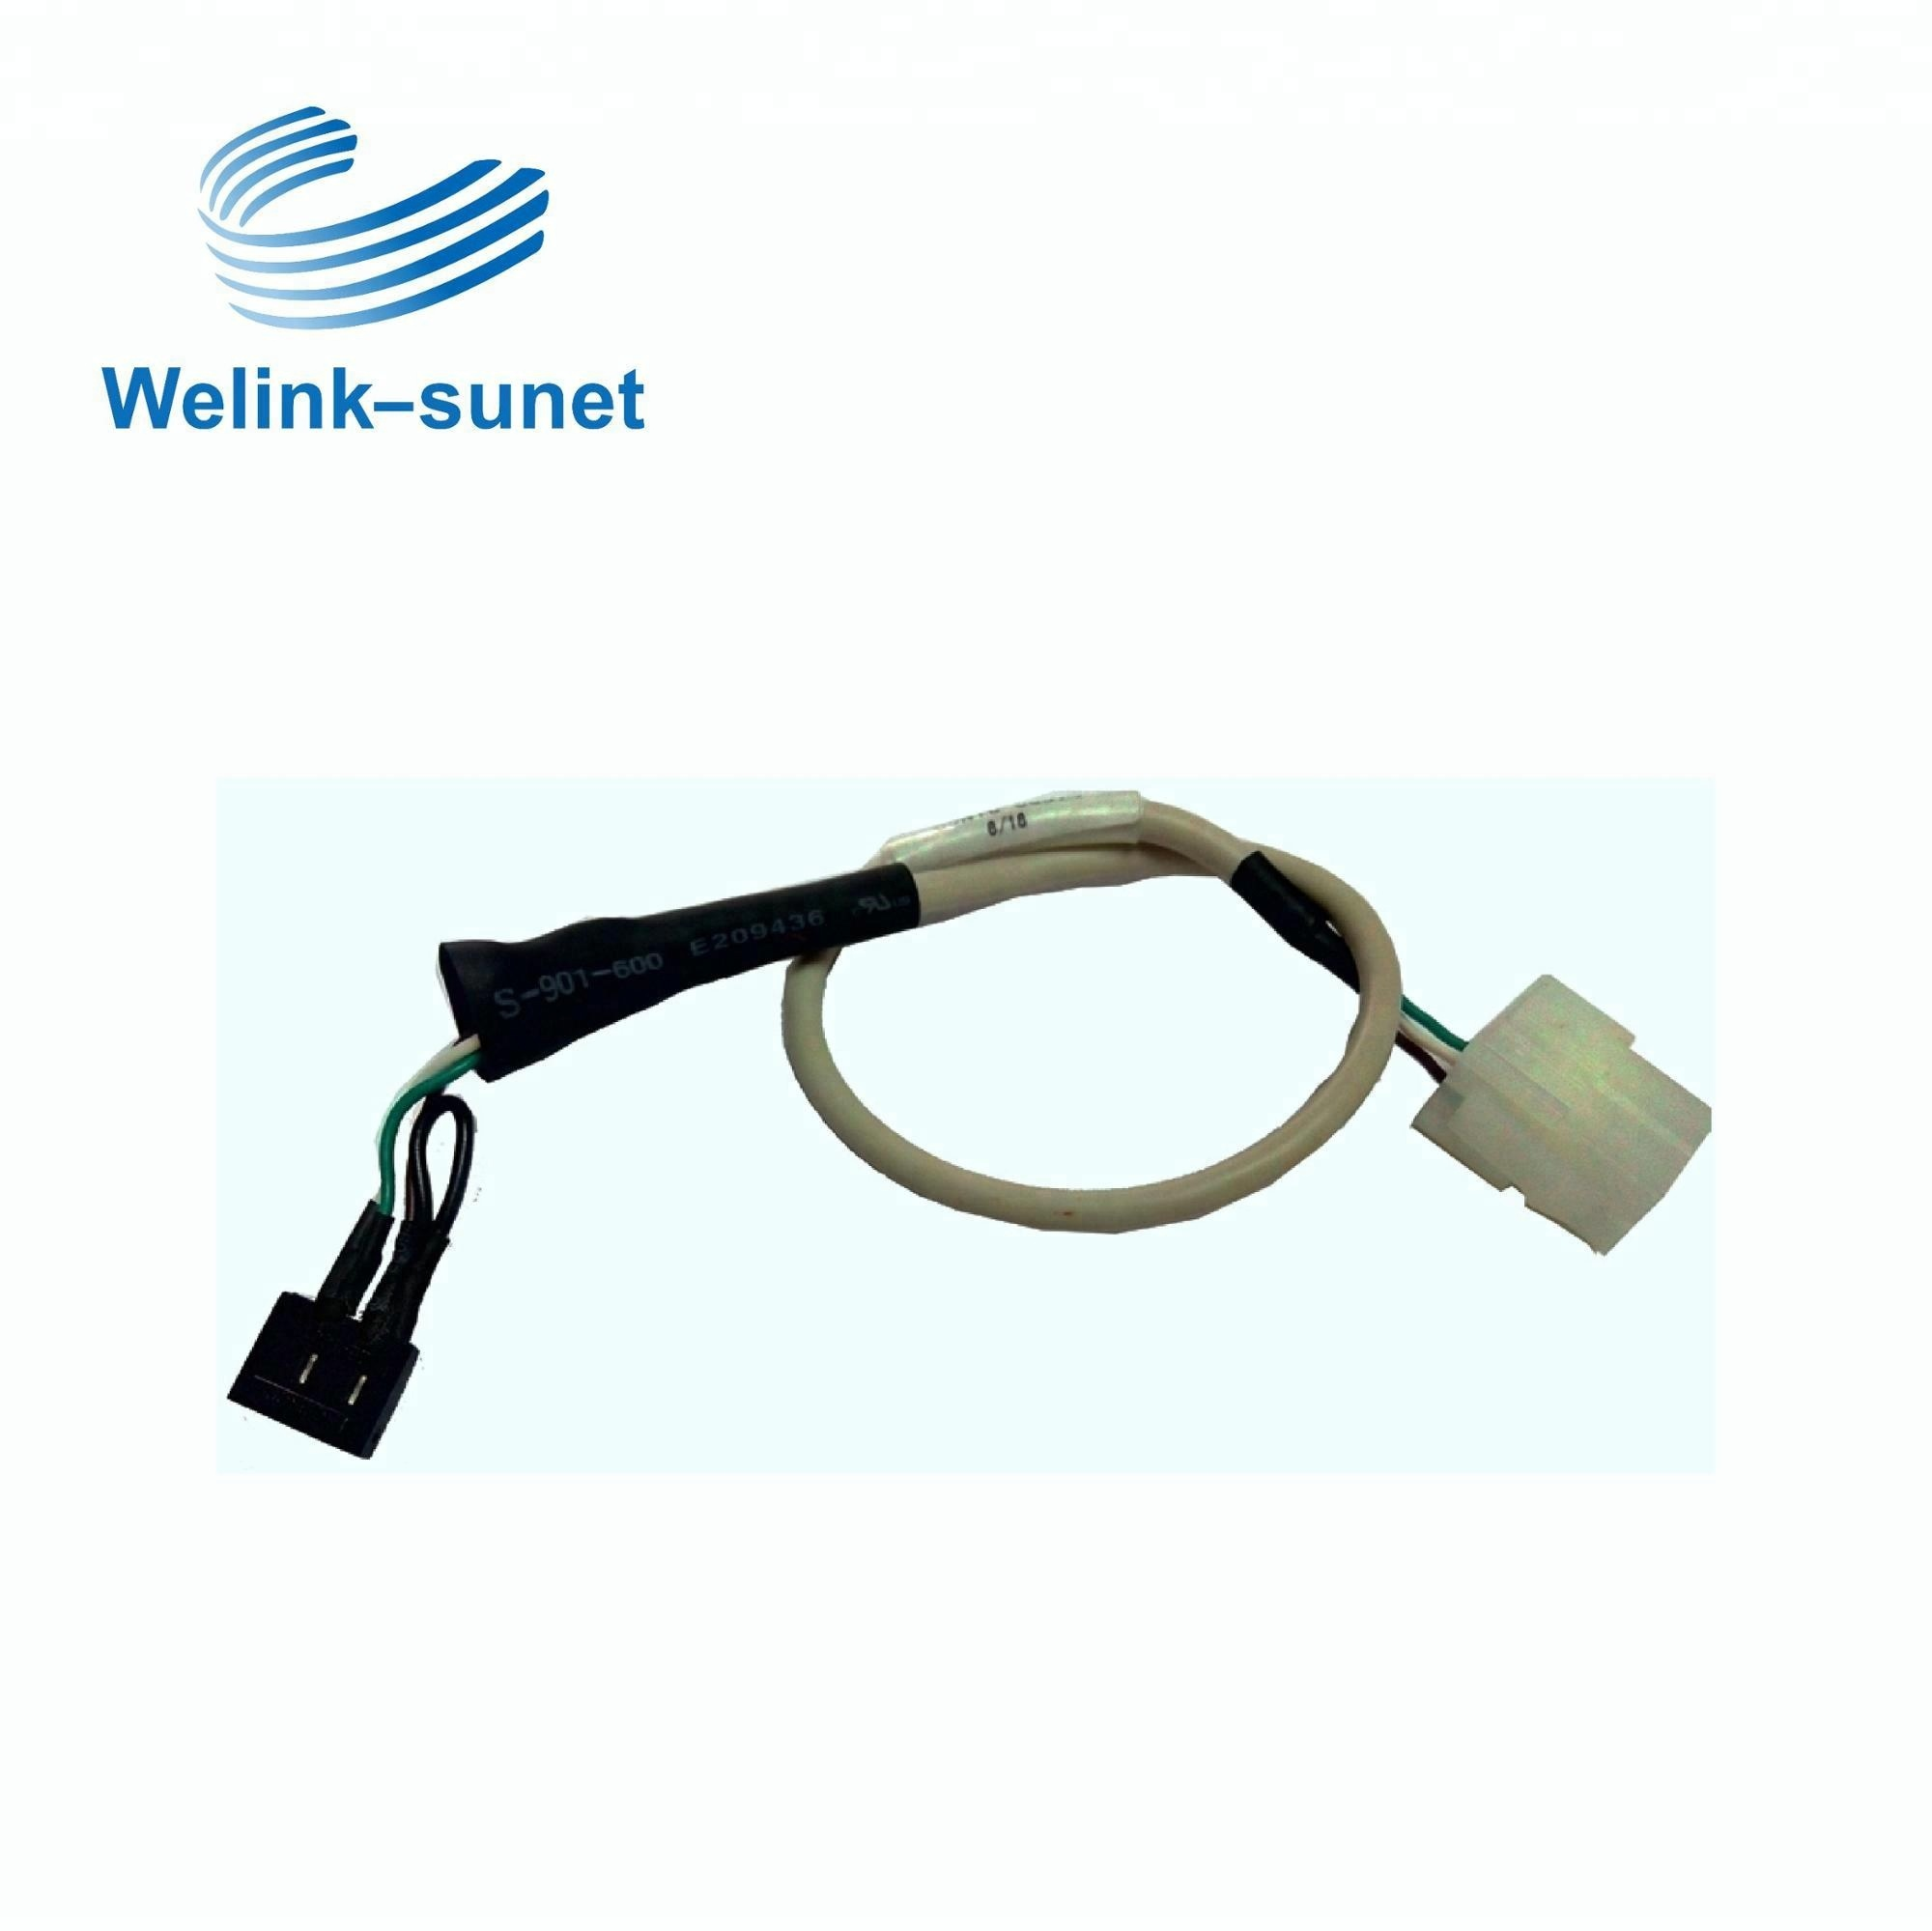 Medical Equipment Connector Wiring Harness, Medical Equipment Connector Wiring  Harness Suppliers and Manufacturers at Alibaba.com